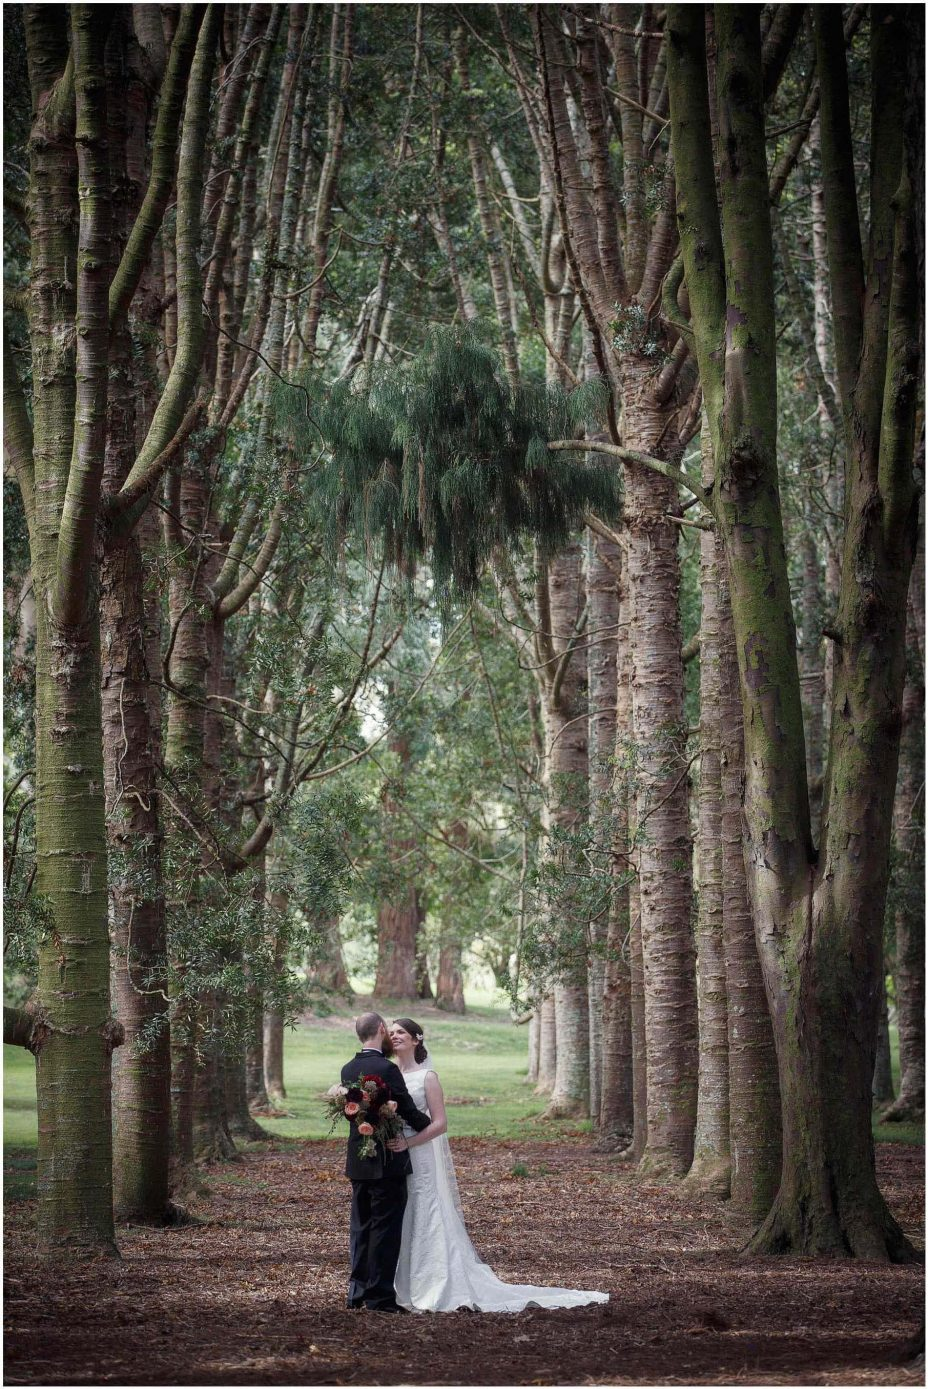 Bride and groom kiss under a canopy of Kauri trees in Cornwall Park Auckland.